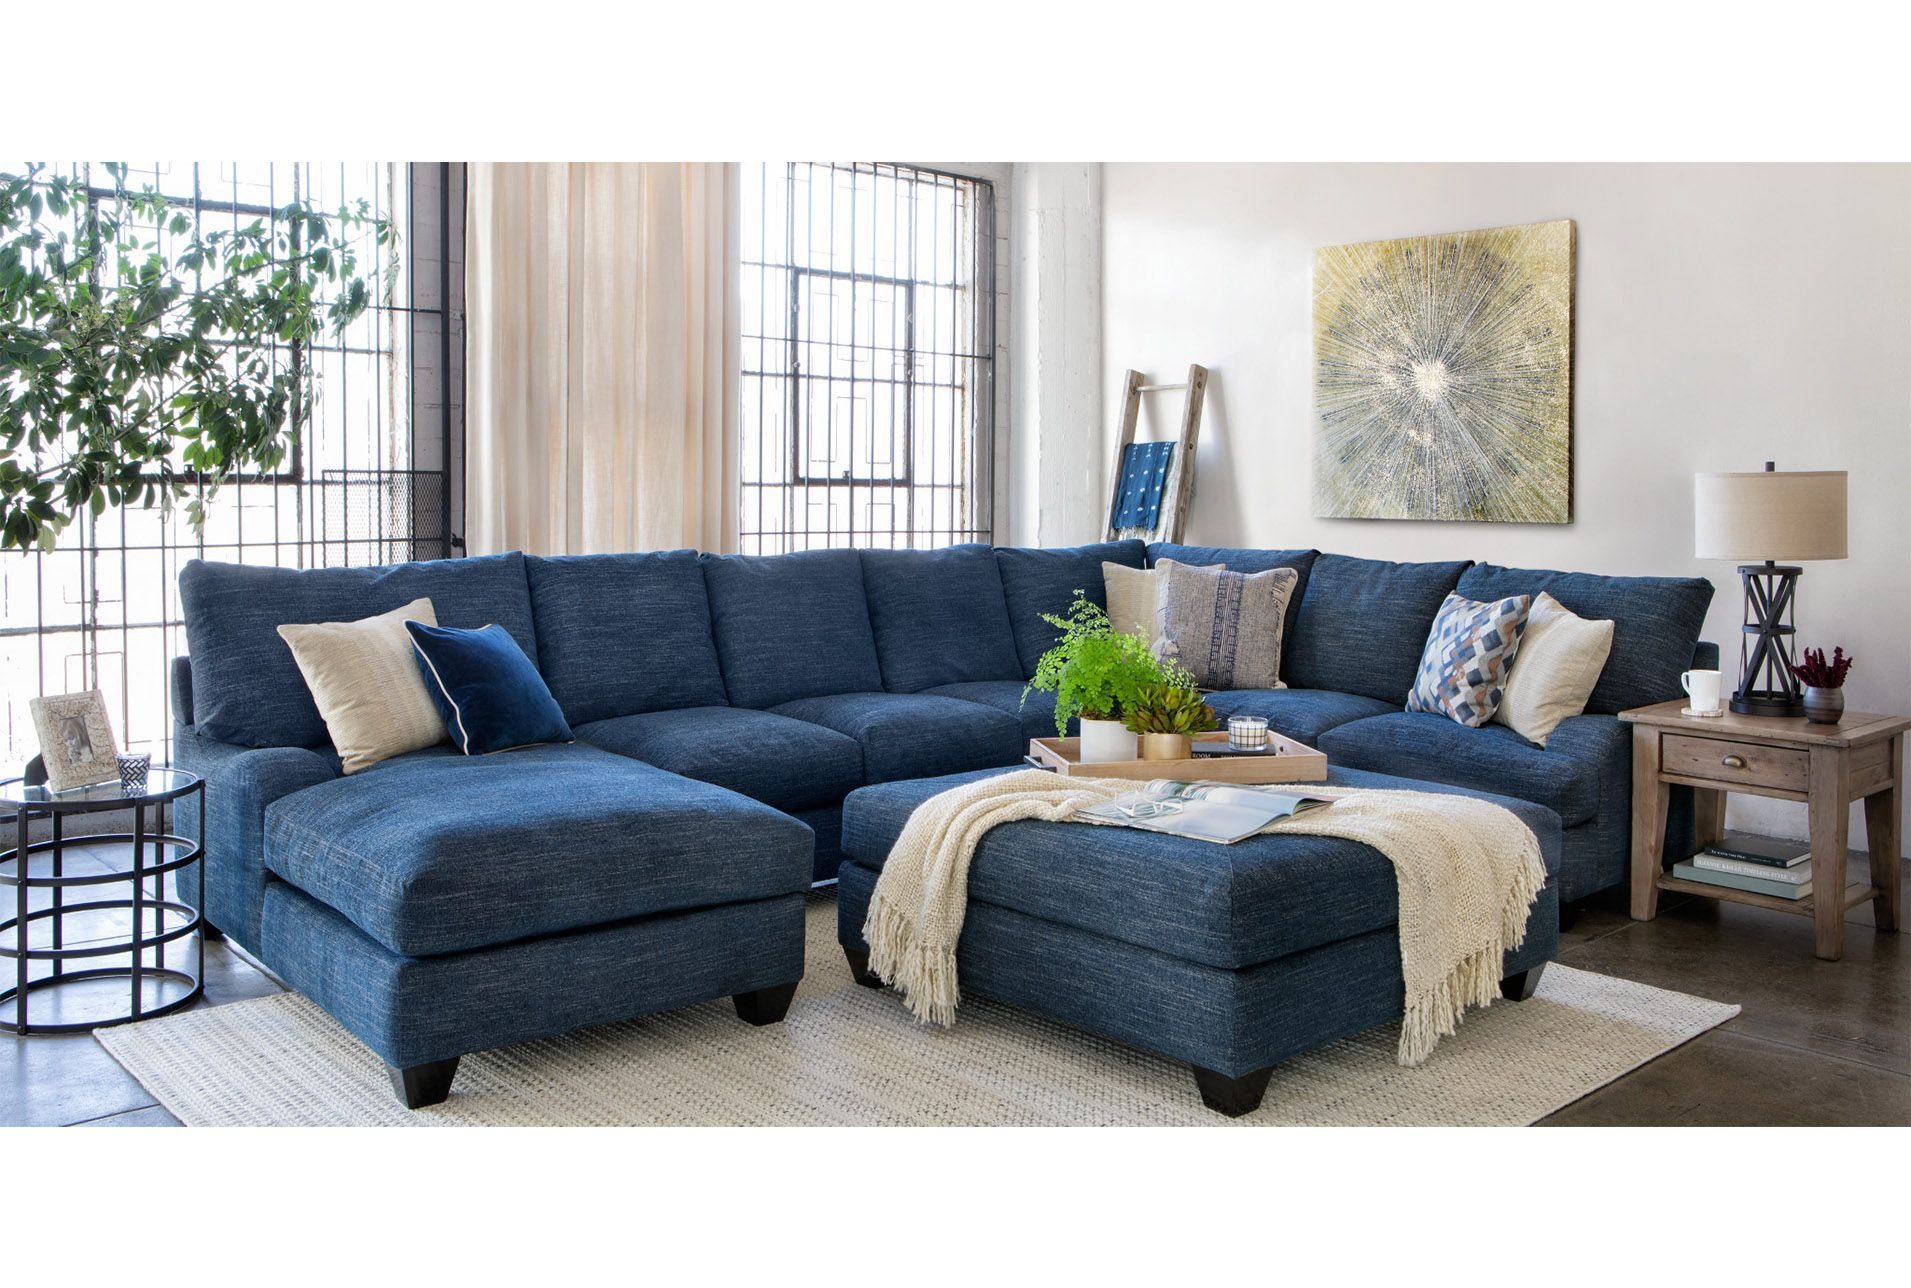 3 Inch Wood Metal Tray Blue Living Room Decor Blue Couch Living Room Navy Blue Living Room